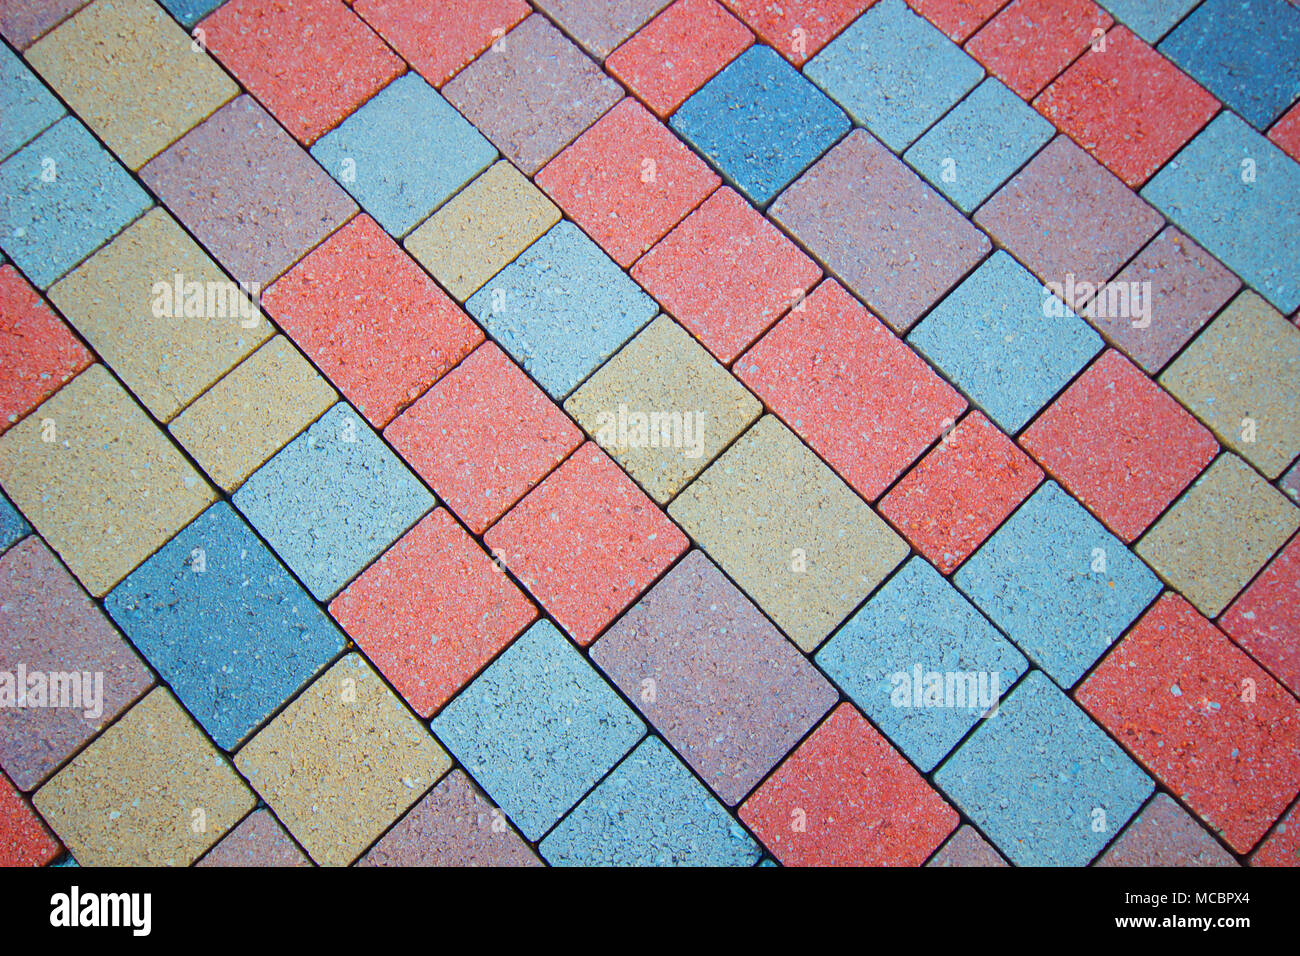 Perspective view of Colorful Brick Floor, stone street road ...